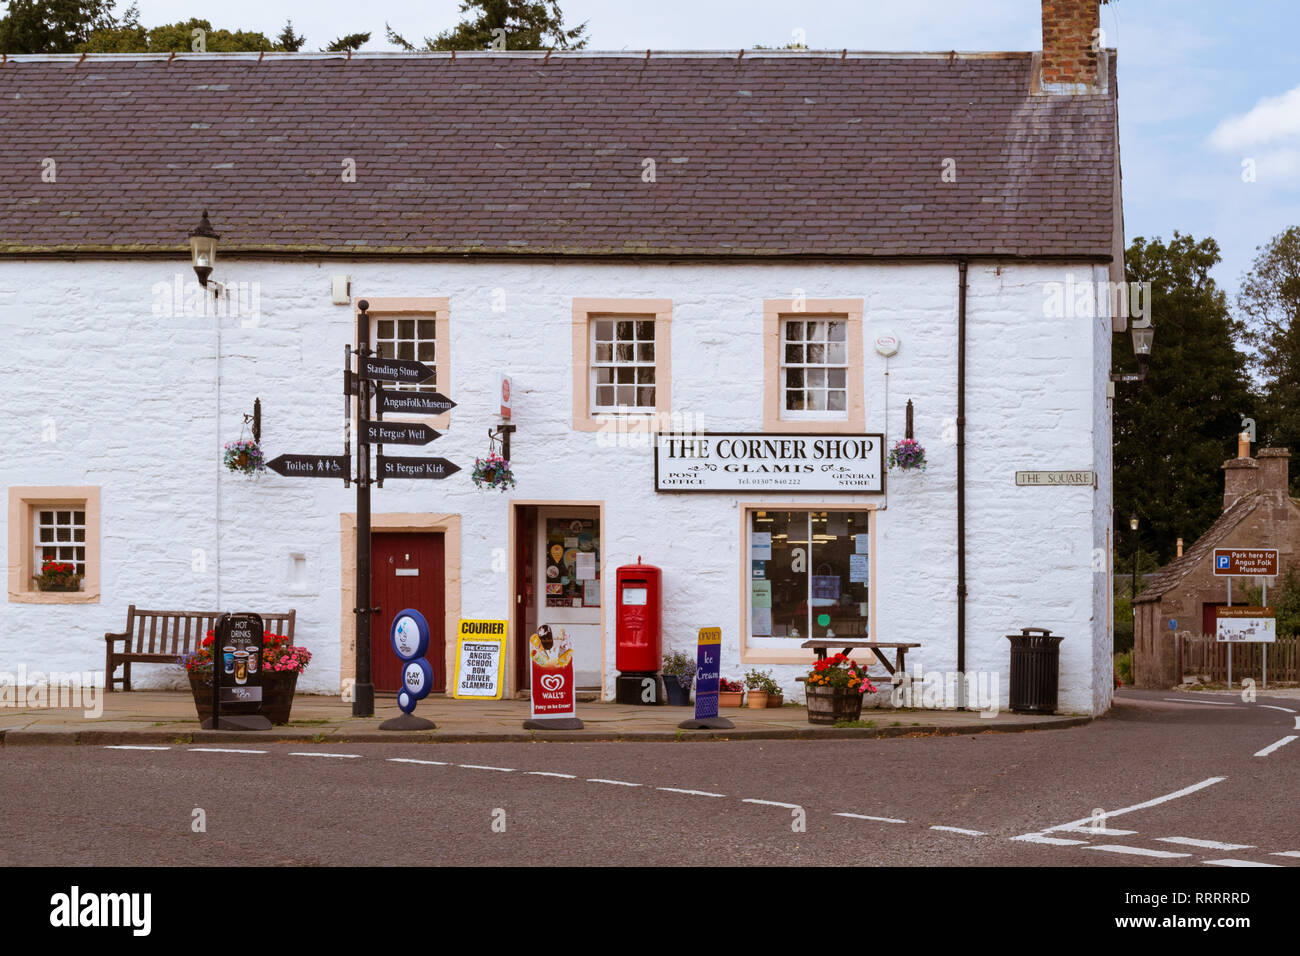 The Corner Shop and Post Office, Glamis, Angus, Scotland, UK - Stock Image